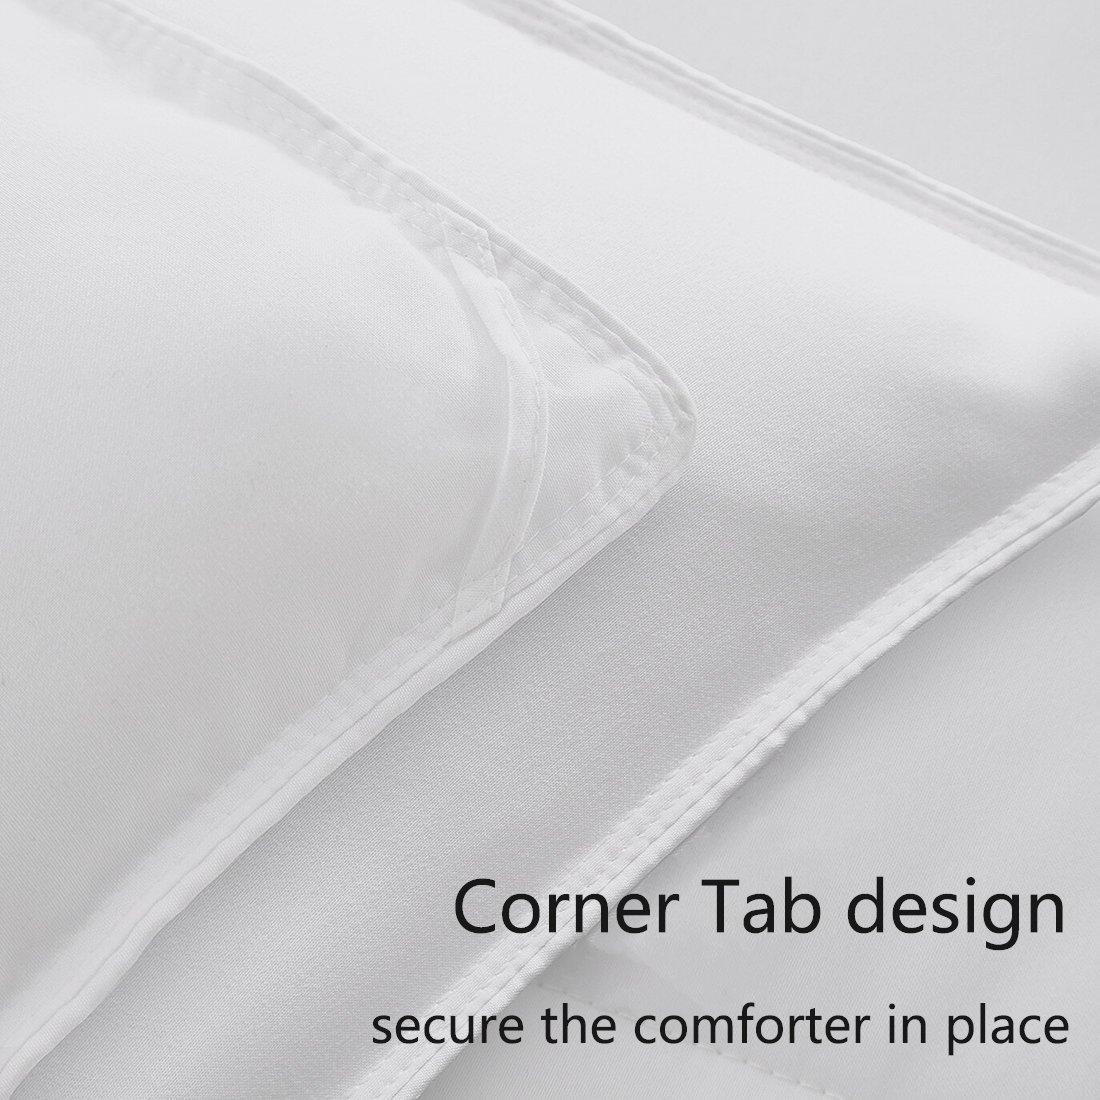 RDS 90% down comforter duvet inner for home and hotel at high quality